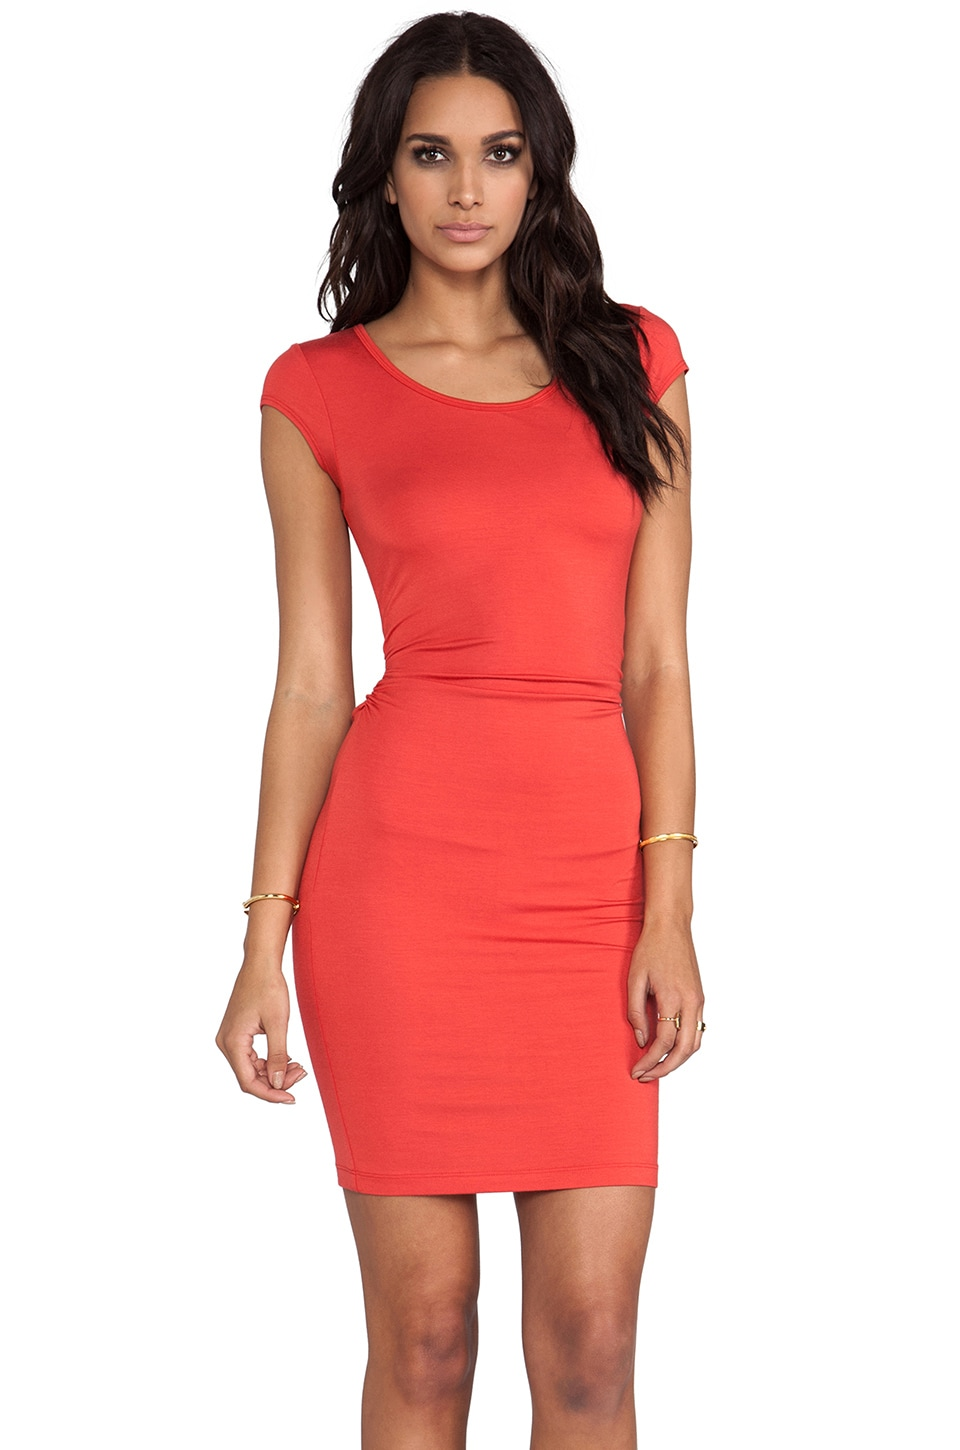 Kain Ari Dress in Fire Orange